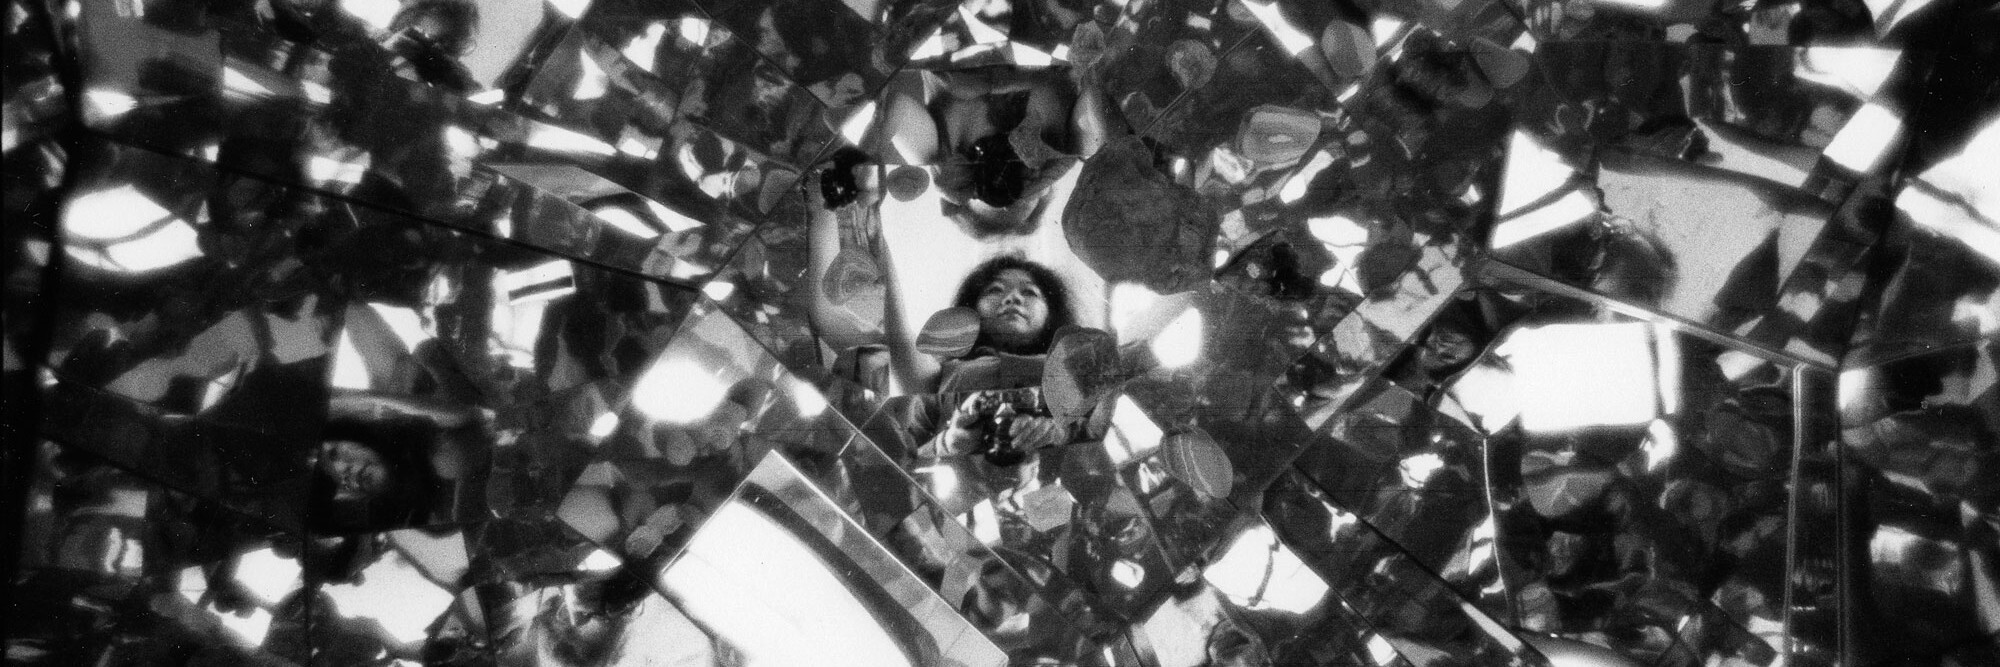 Peter Moore. Photograph of Shigeko Kubota reflected in Three Mountains (1976–79) in her loft on Mercer Street, New York, 1979. Courtesy Shigeko Kubota Video Art Foundation. Photo © 2021 Barbara Moore/Licensed by VAGA at Artists Rights Society (ARS), NY. Courtesy Paula Cooper Gallery, New York. Shown: Shigeko Kubota. Three Mountains. 1976–79. Four-channel standard-definition video (color, sound; approx. 30 min. each), seven cathode-ray tube monitors, plywood, and mirrors, overall dimensions variable. © 2021 Estate of Shigeko Kubota/Licensed by VAGA at Artists Rights Society (ARS), NY